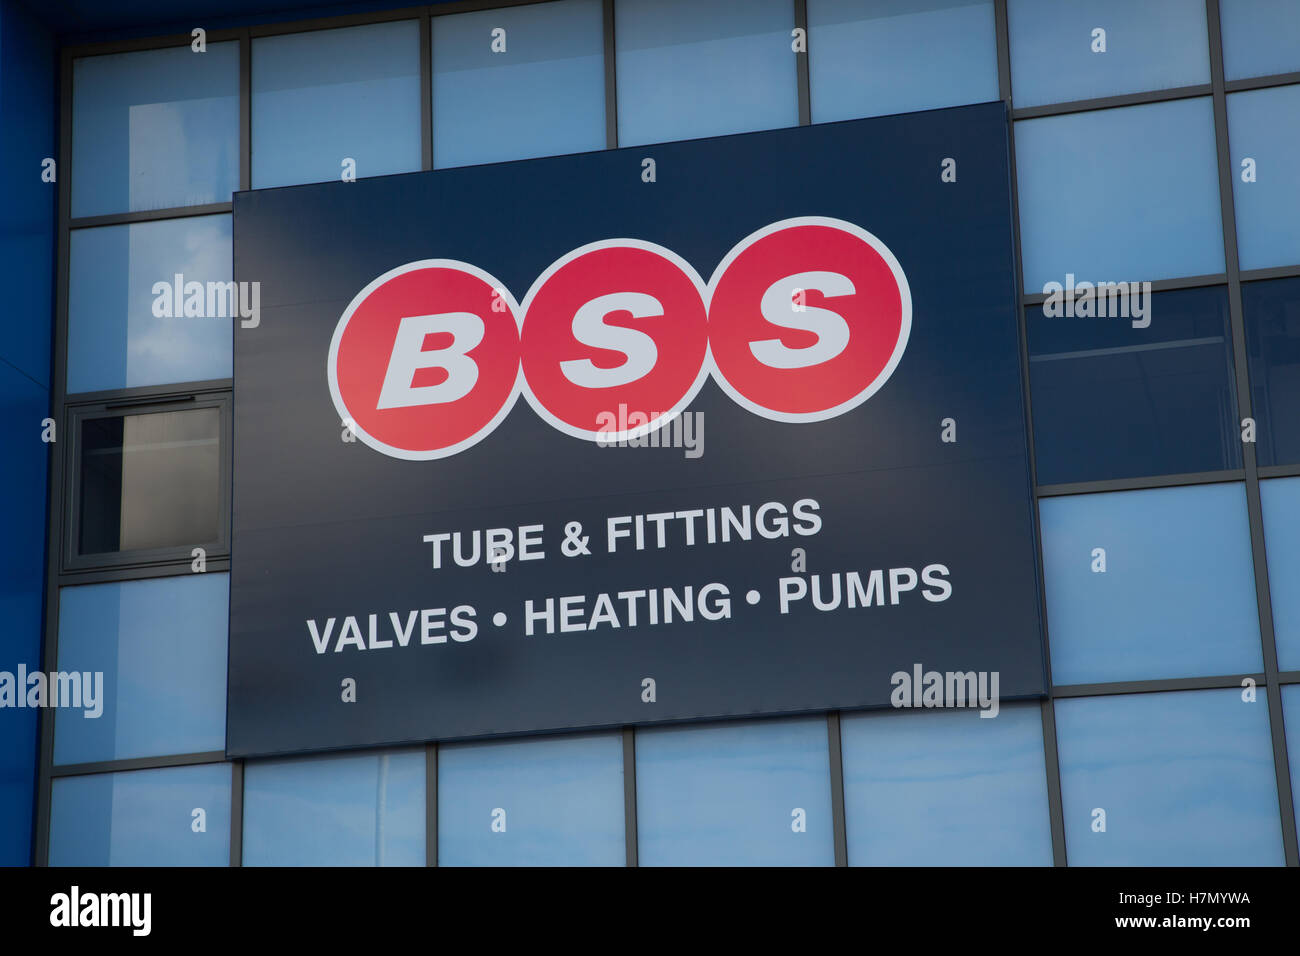 BSS trade centre signage - Stock Image